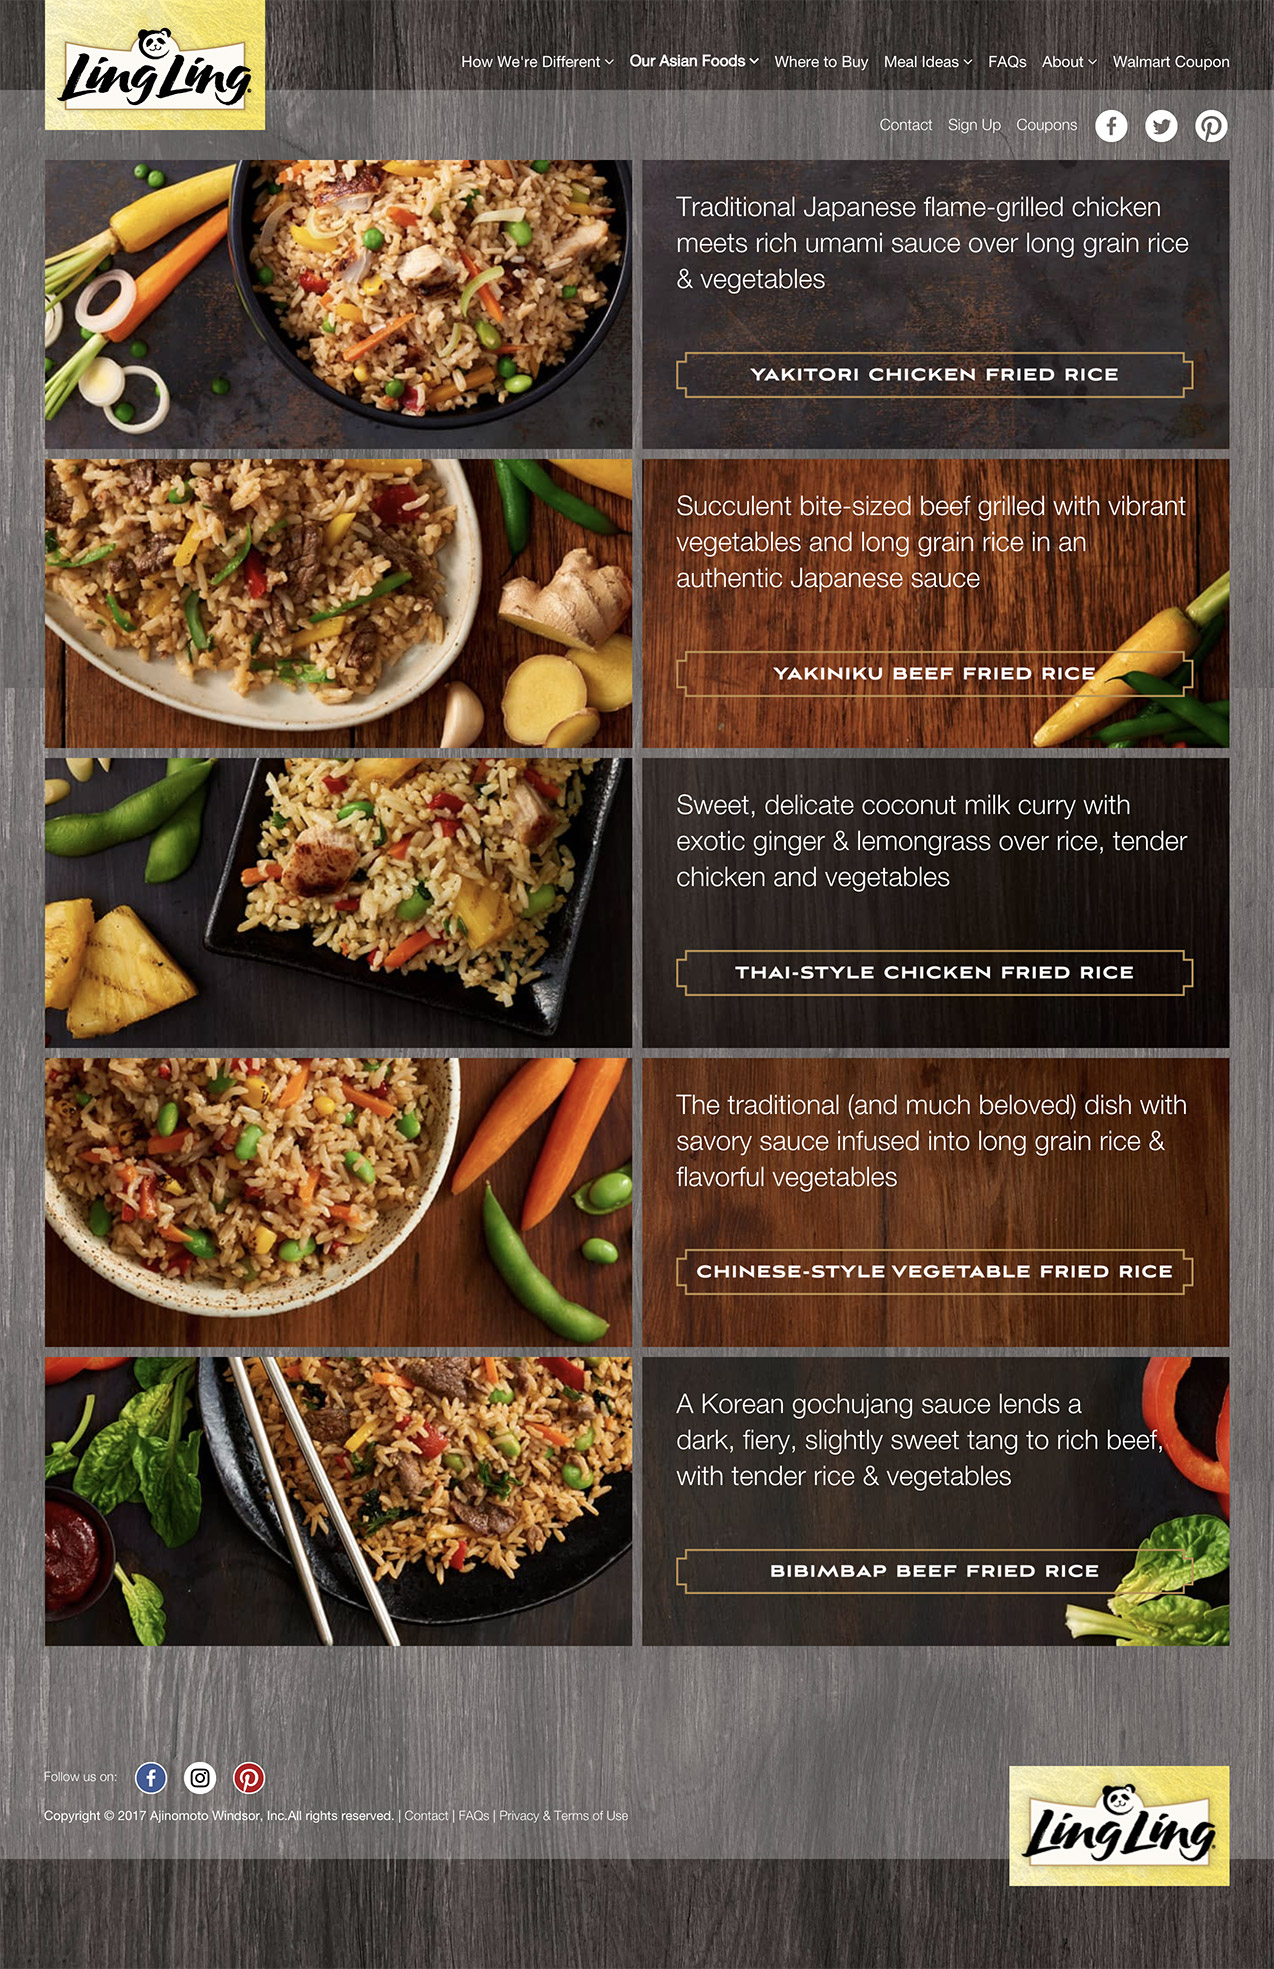 screencapture-ling-ling-asian-food-fried-rice-1513875511903.jpg